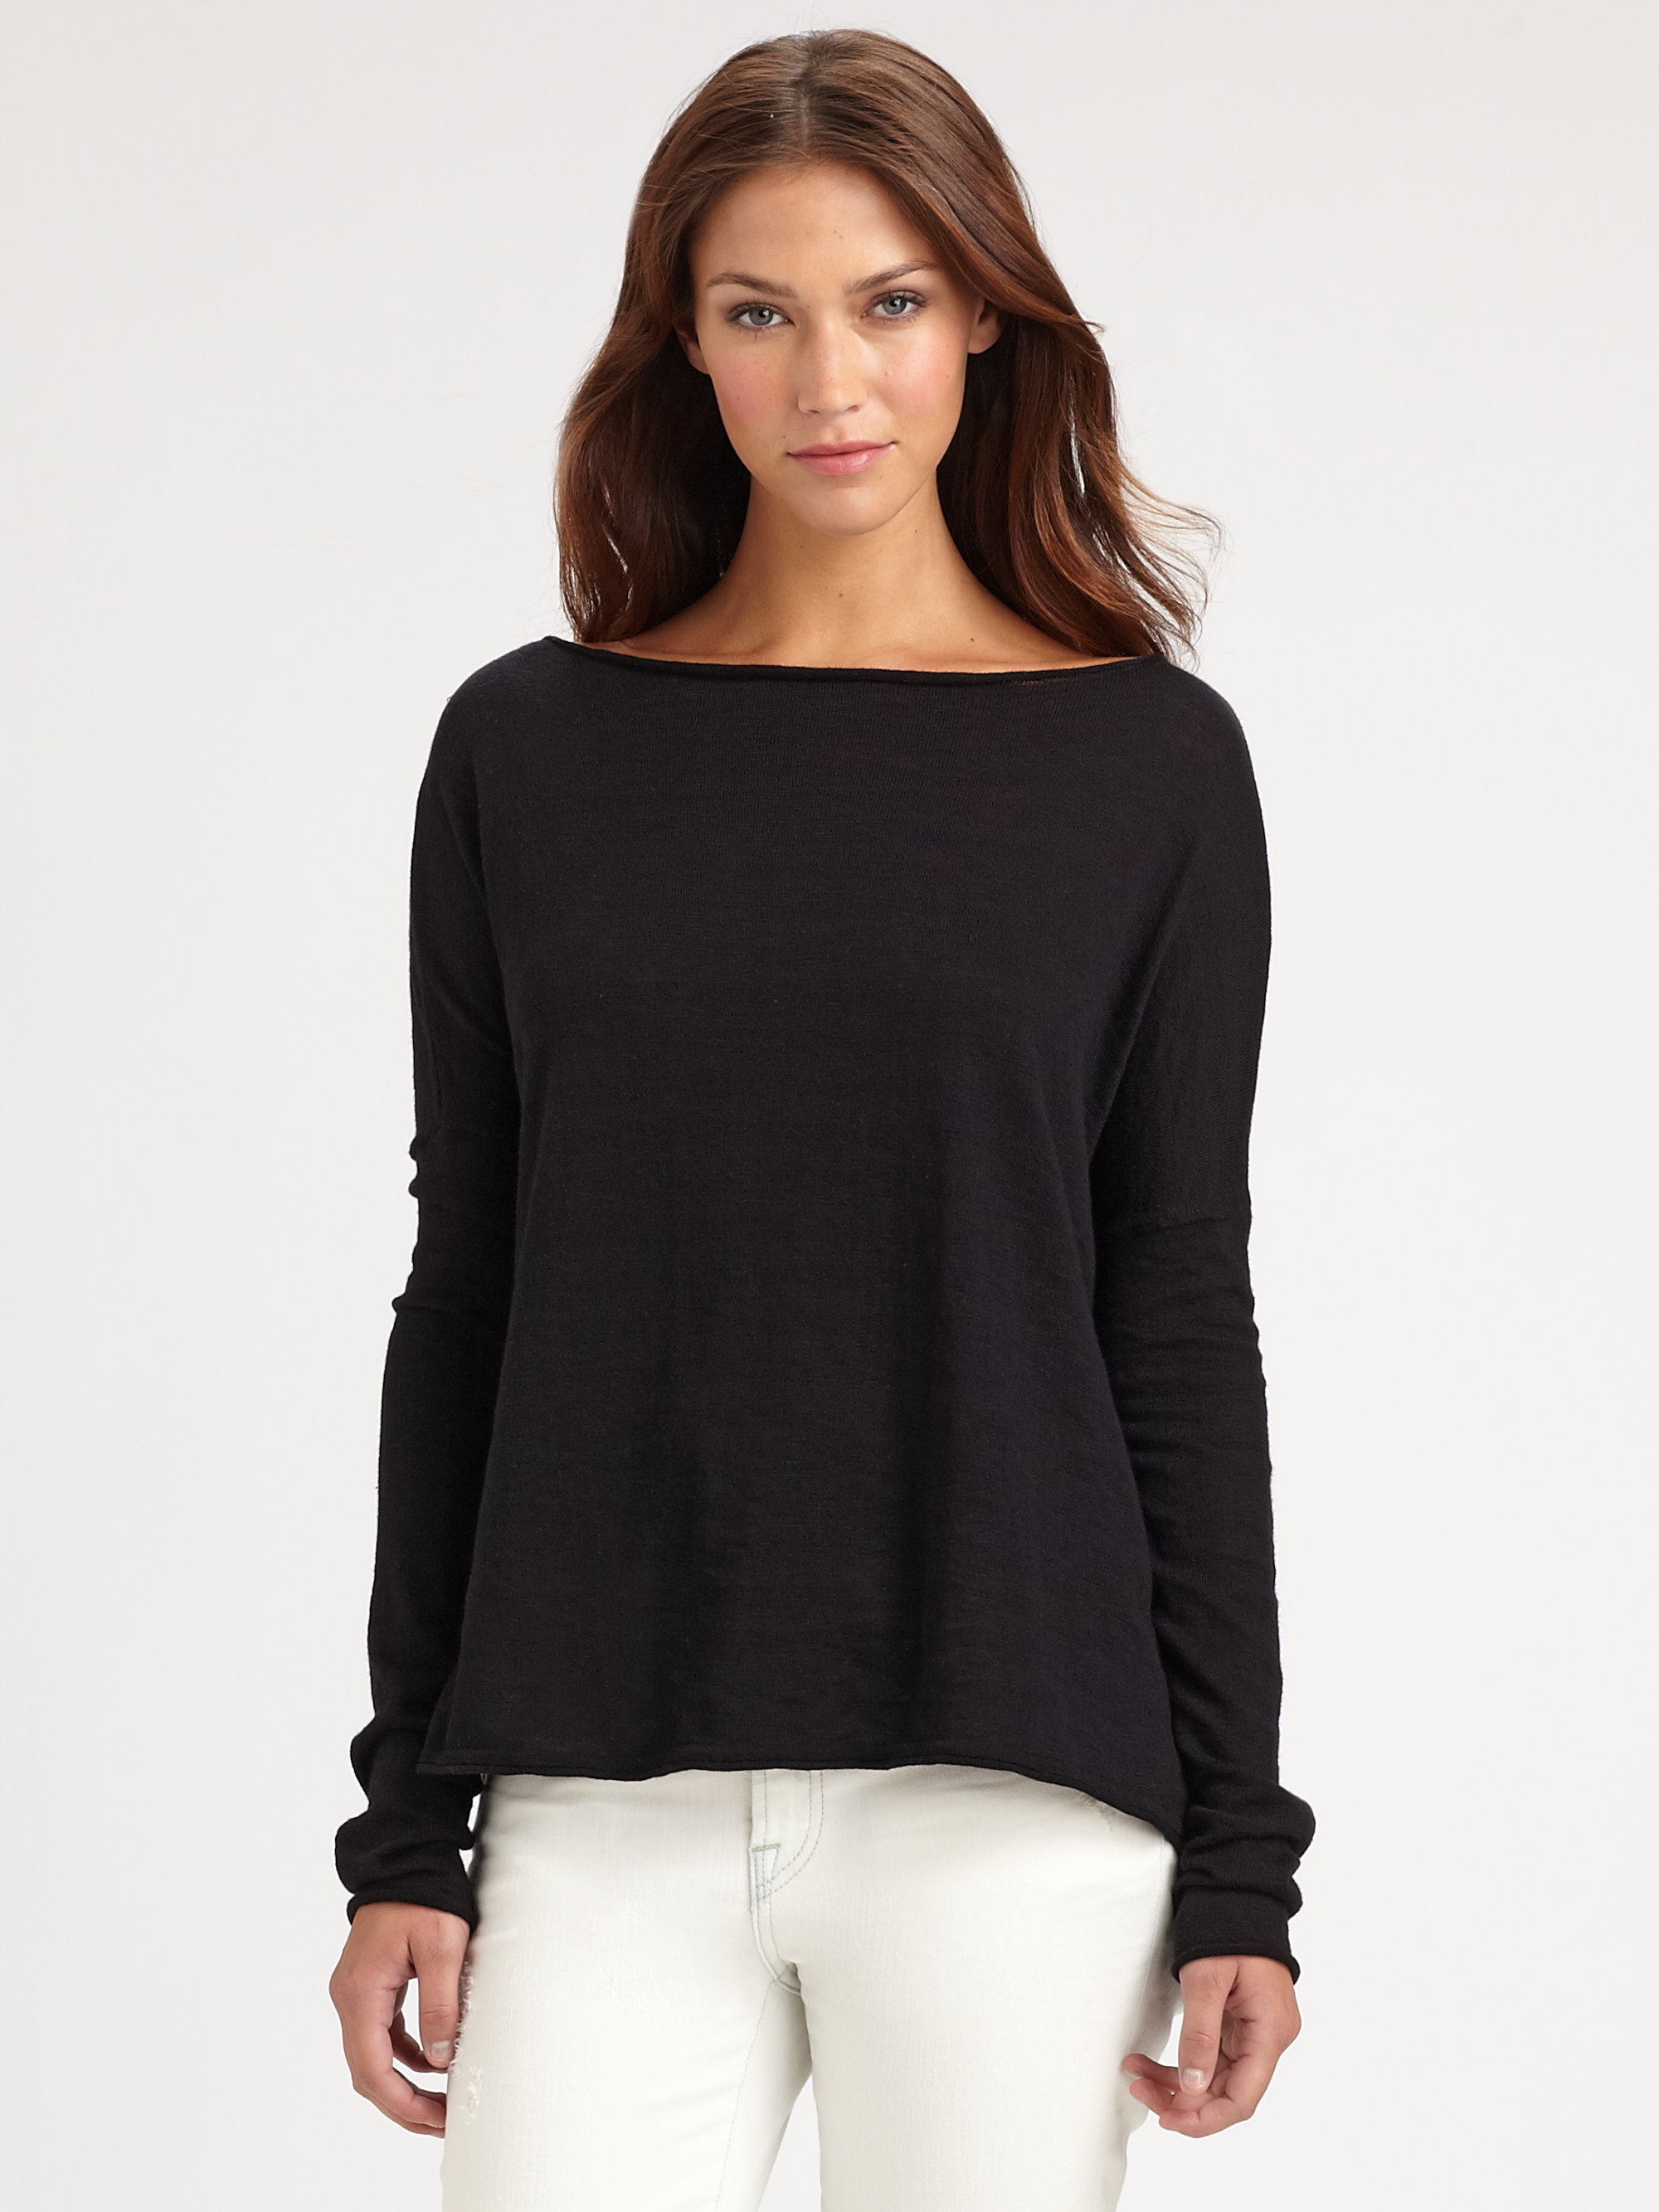 Vince Oversized Boatneck Slub Cotton Sweater in Black | Lyst